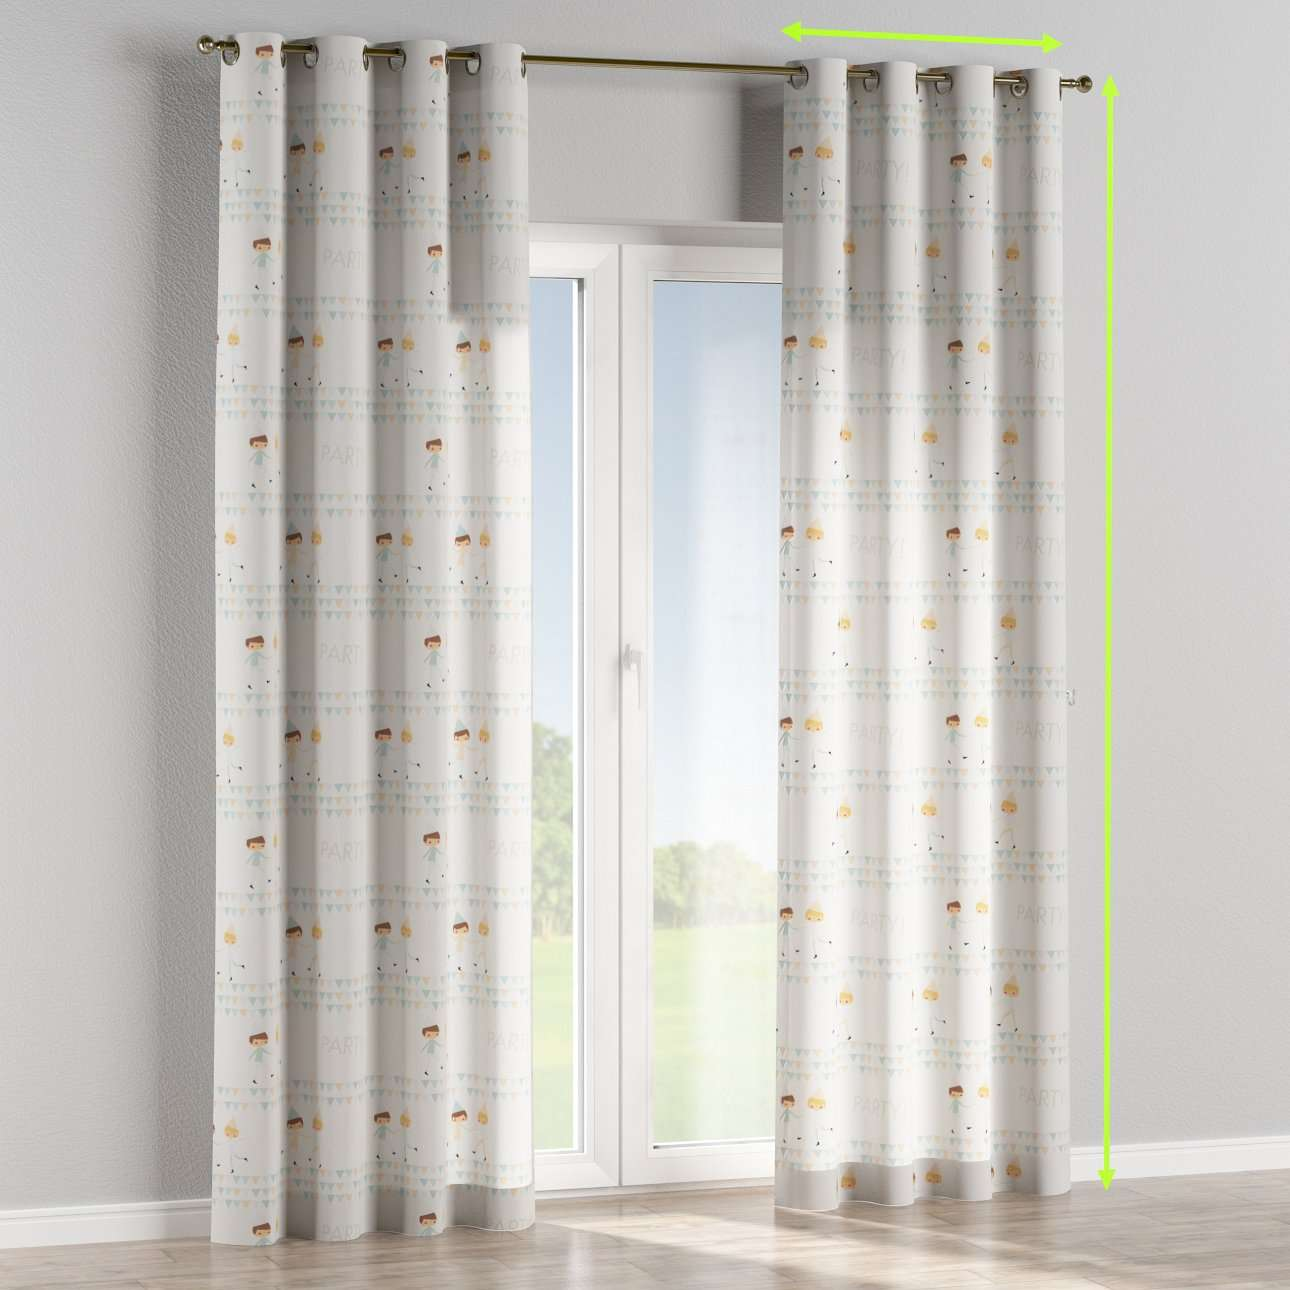 Eyelet lined curtains in collection Apanona, fabric: 151-01